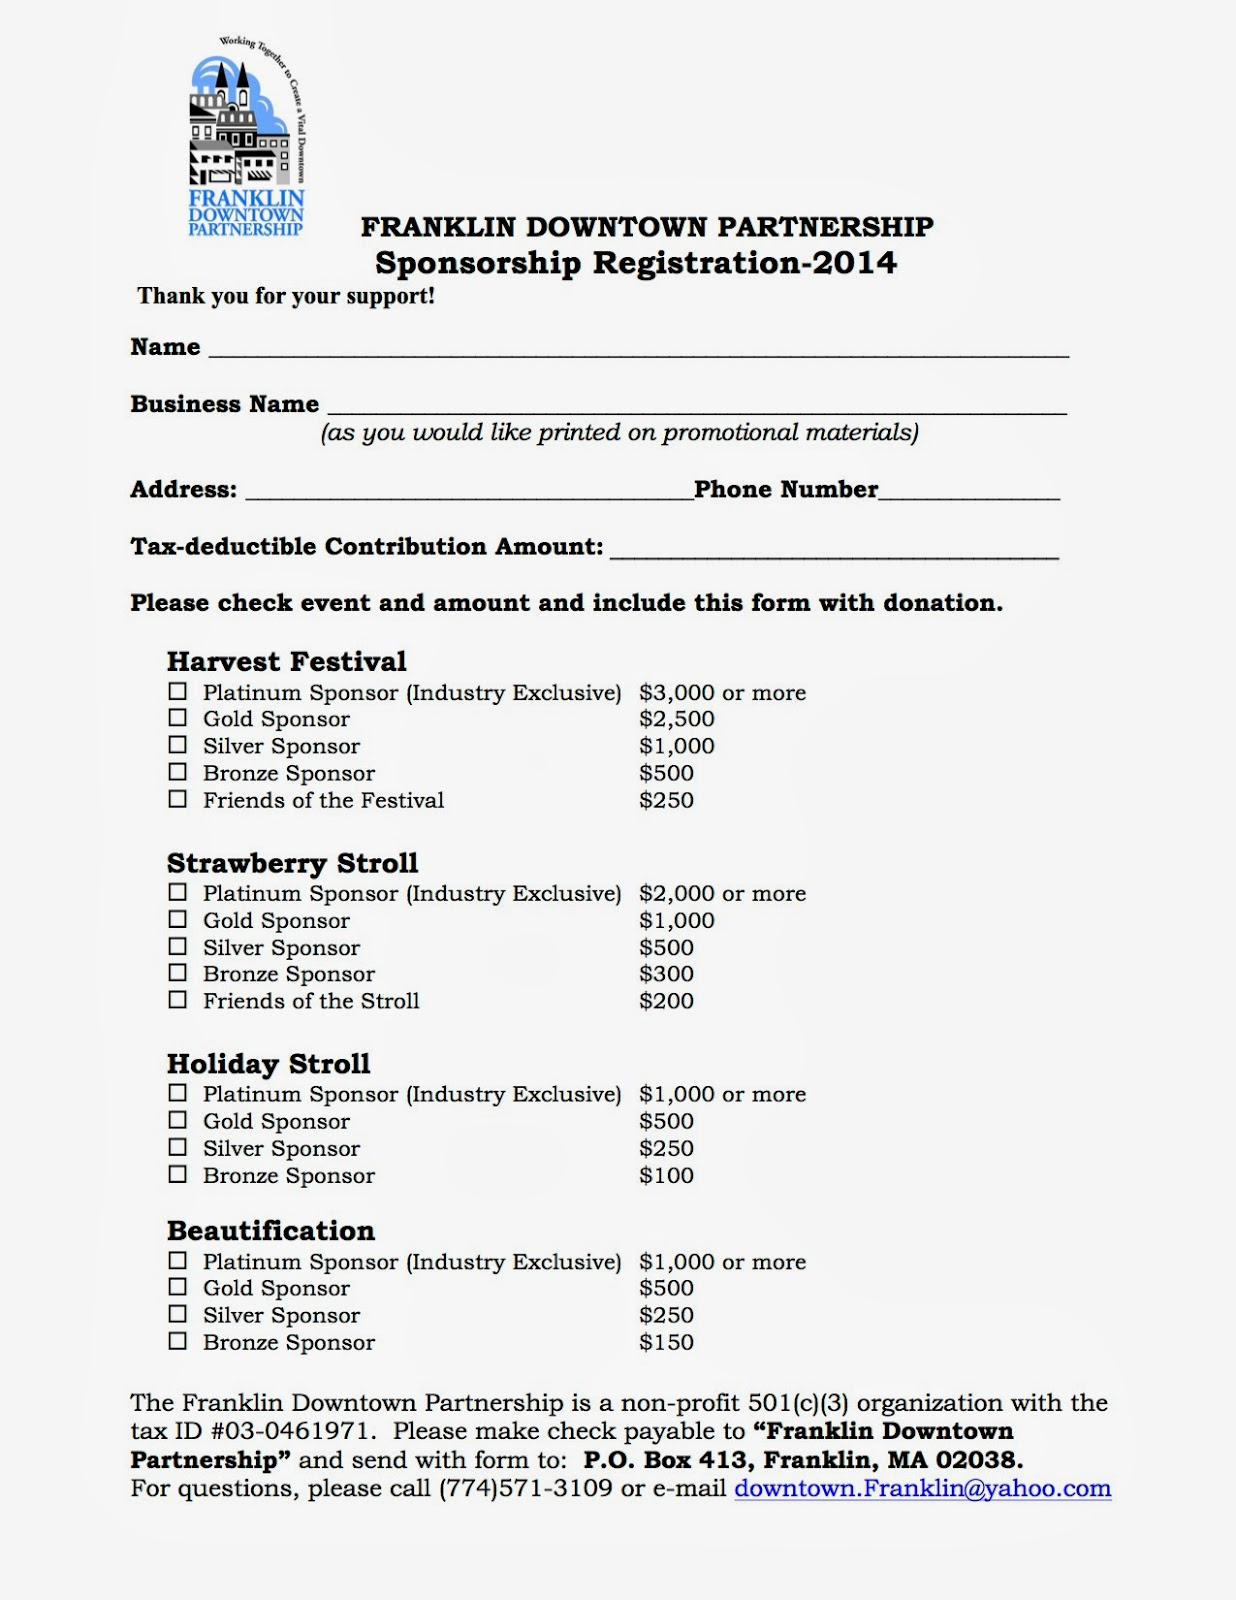 Franklin Downtown Partnership 2014 Sponsorship Registration Form – How to Make a Sponsor Form